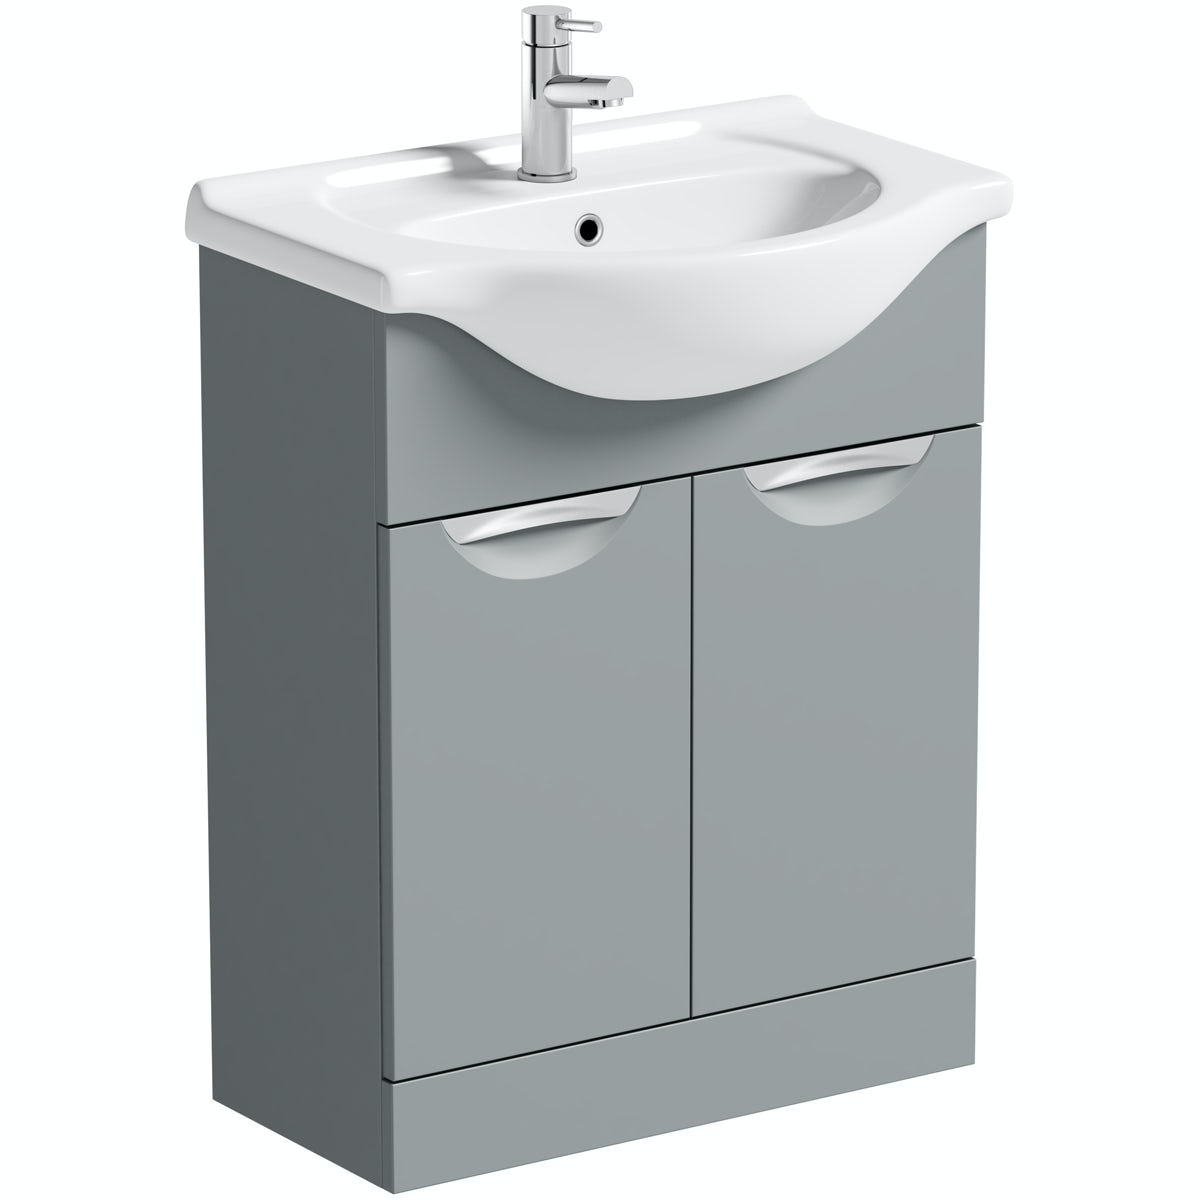 Orchard Elsdon stone grey vanity unit and basin 650mm